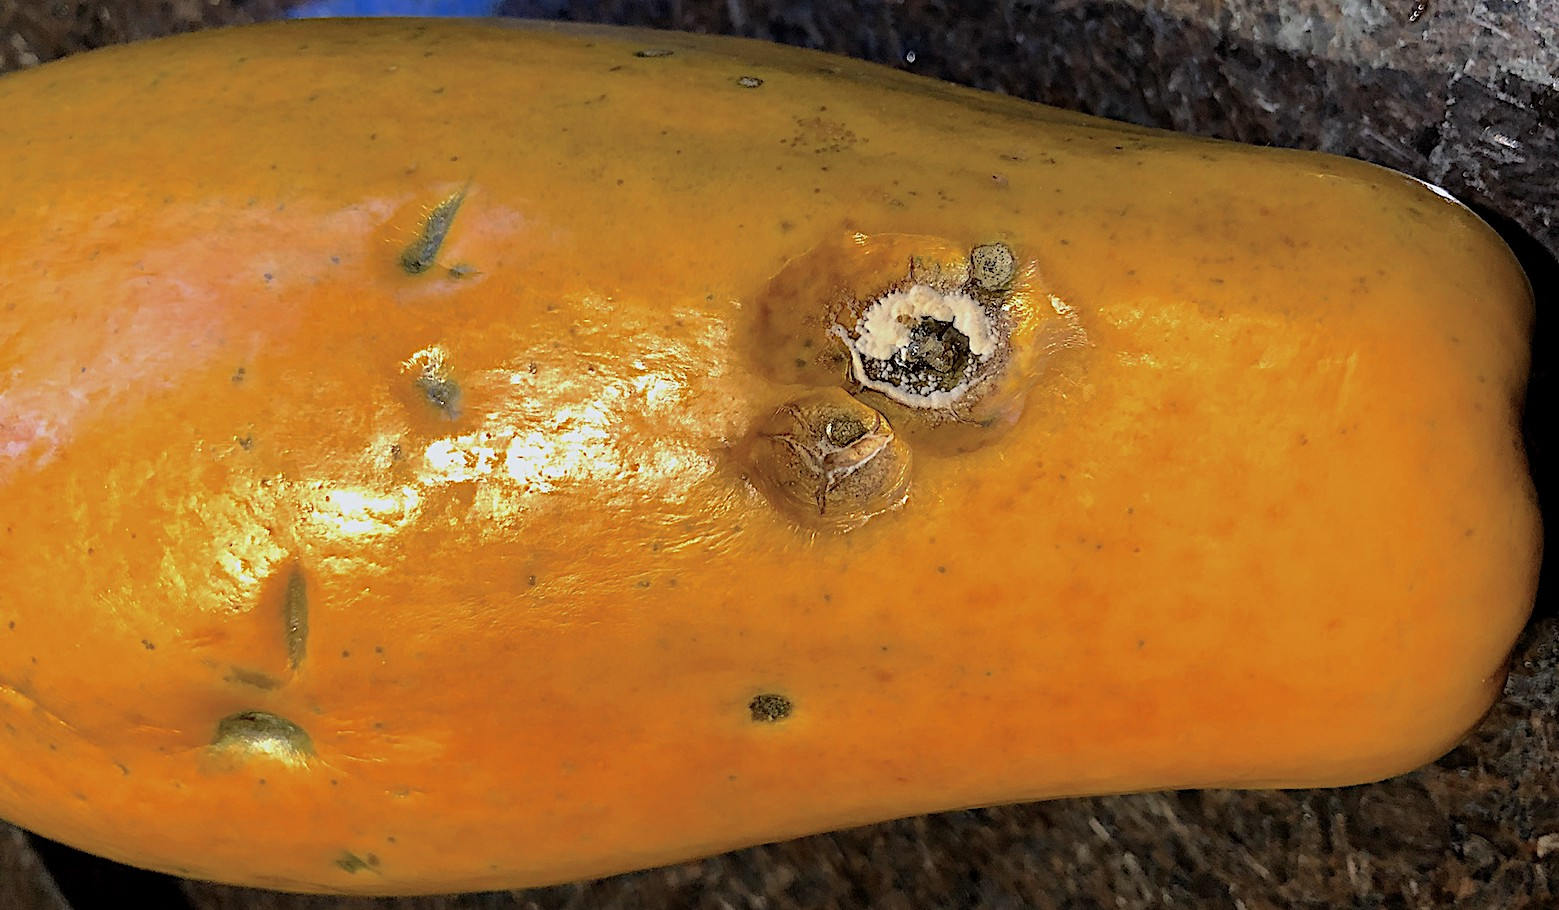 Asperisporium Black Spot of Papaya on Fruit